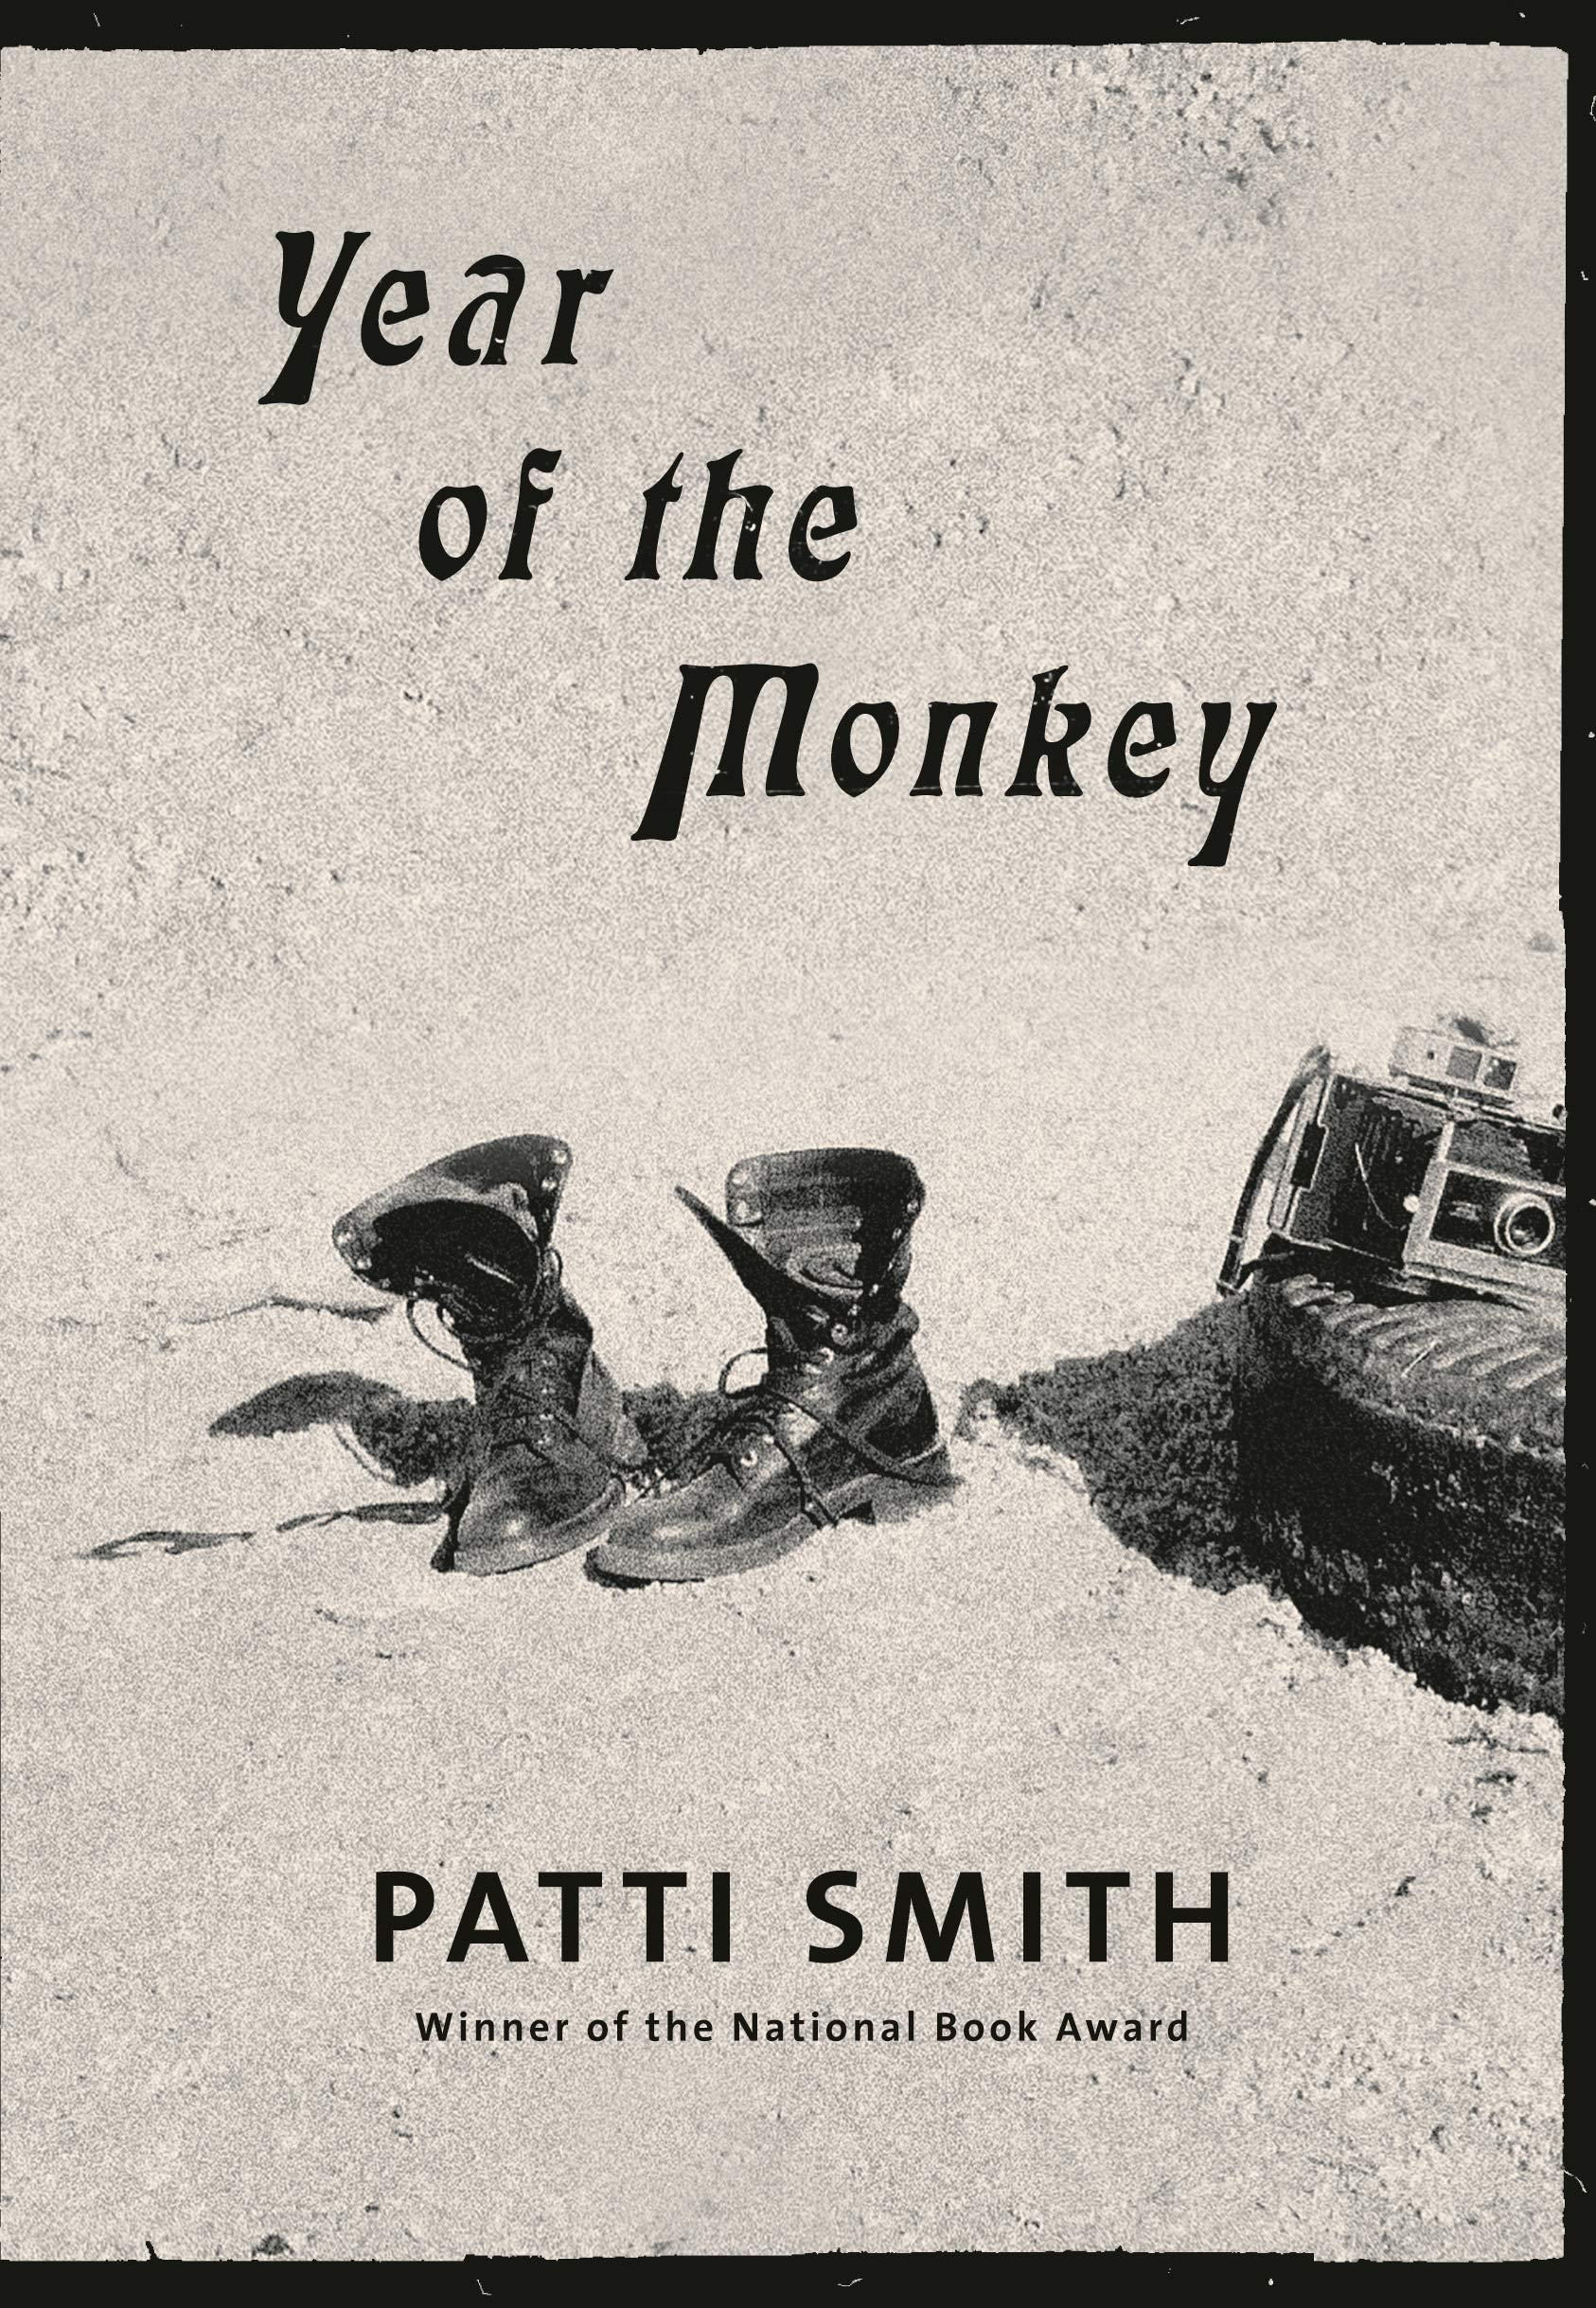 Image result for patti smith year of the monkey